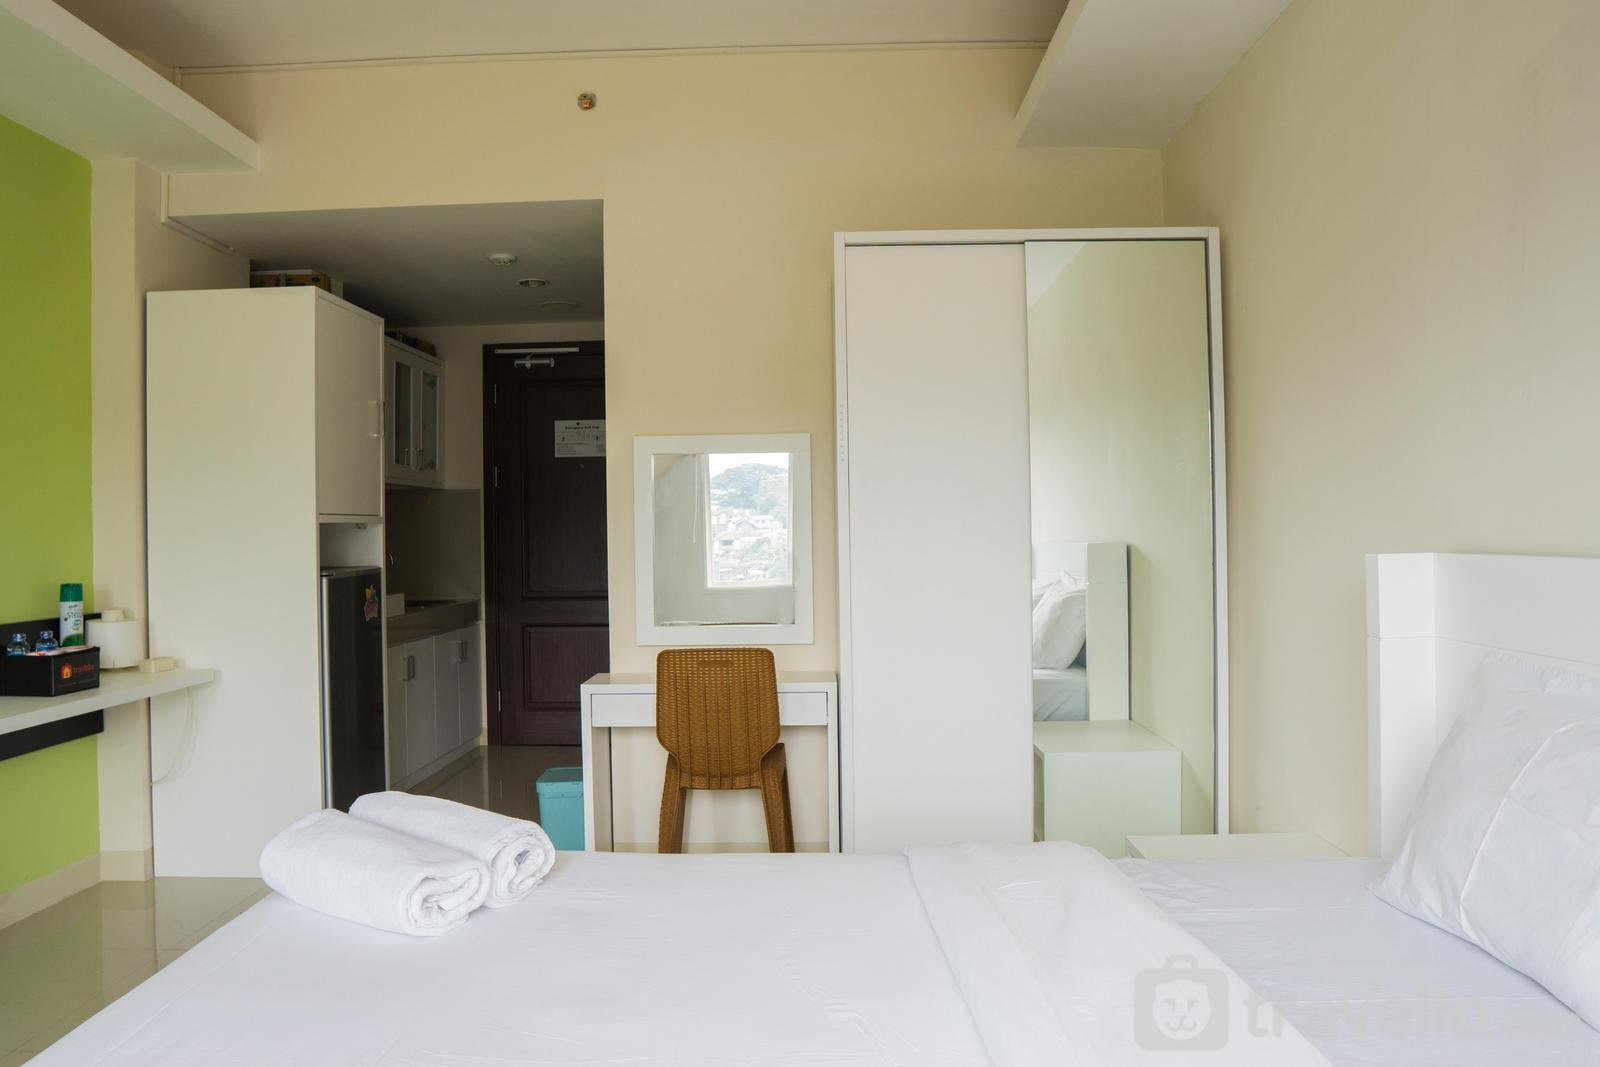 Galeri Ciumbuleuit 2 Apartment - Convenient Studio at Galeri Ciumbuleuit 2 Apartment By Travelio